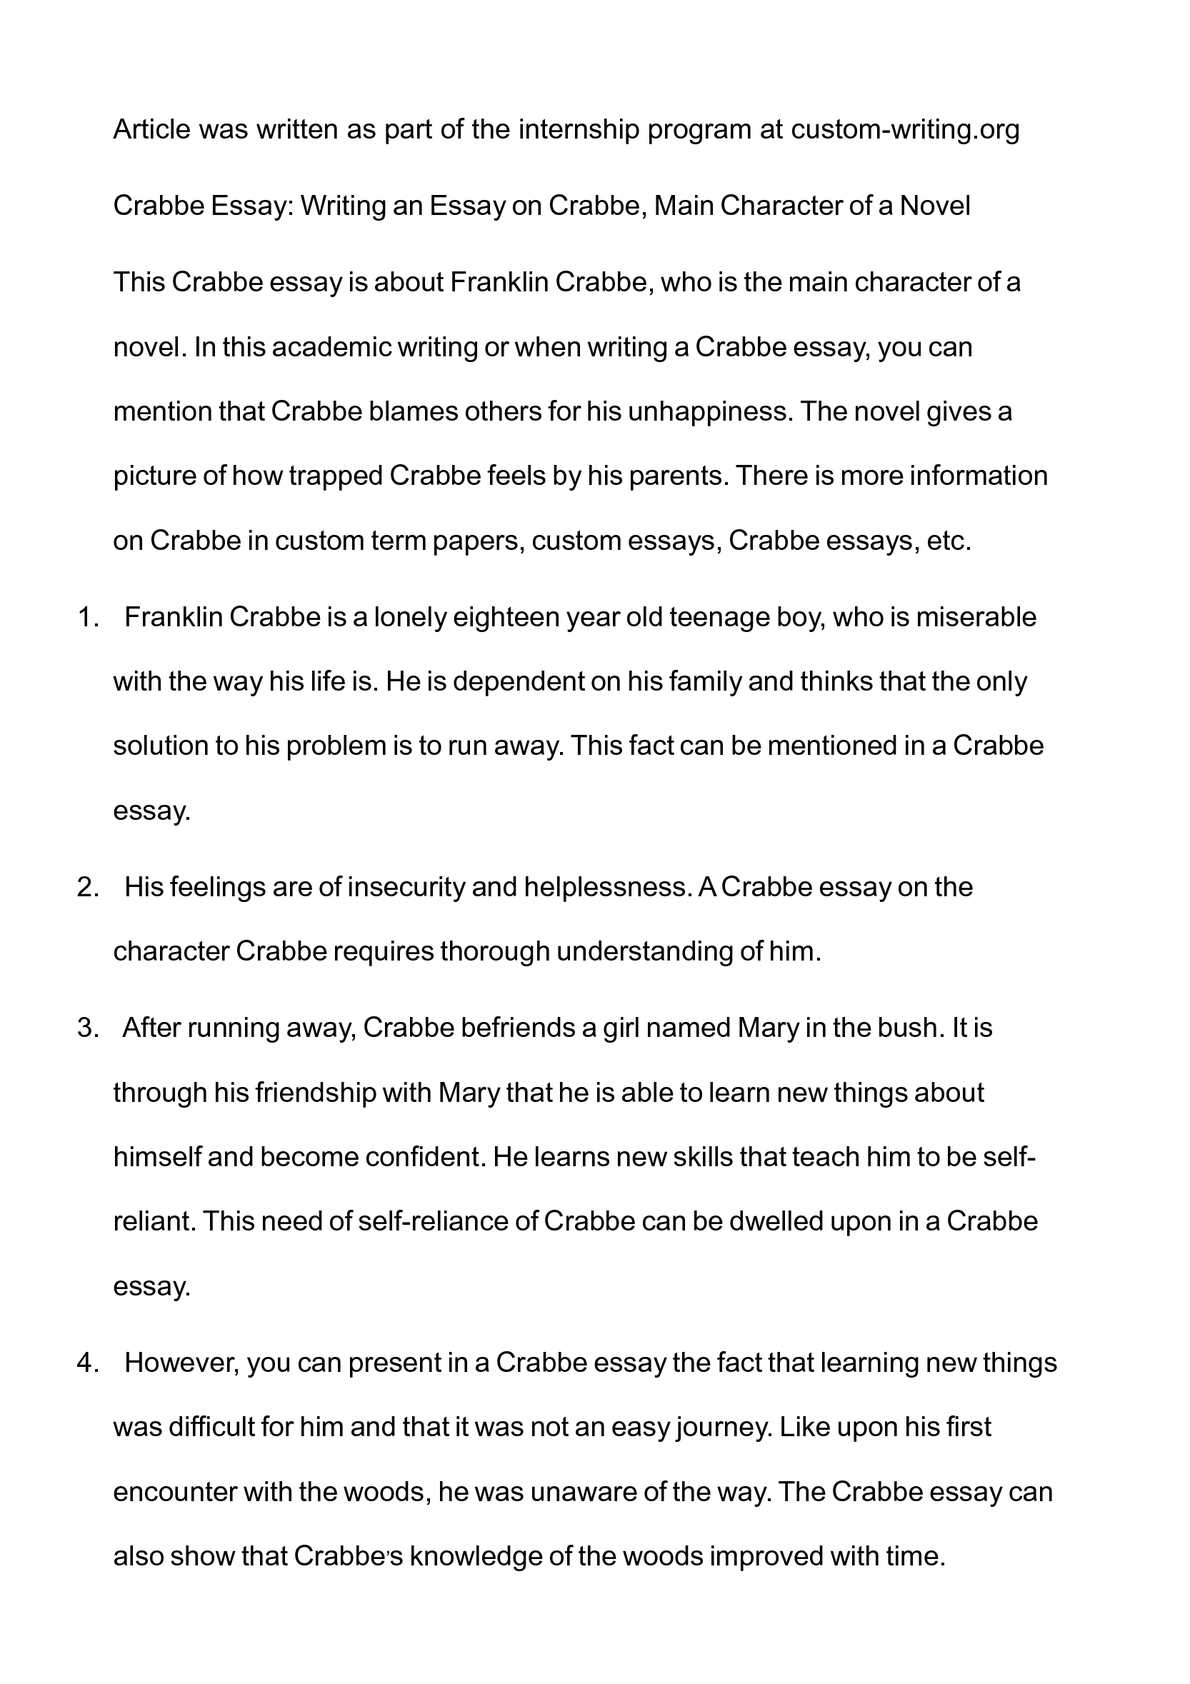 crabbe essay calam atilde 131 acirc copy o crabbe essay writing an essay on crabbe main calamatilde131acirccopyo crabbe essay writing an essay on crabbe main character calamatilde131acirccopyo crabbe